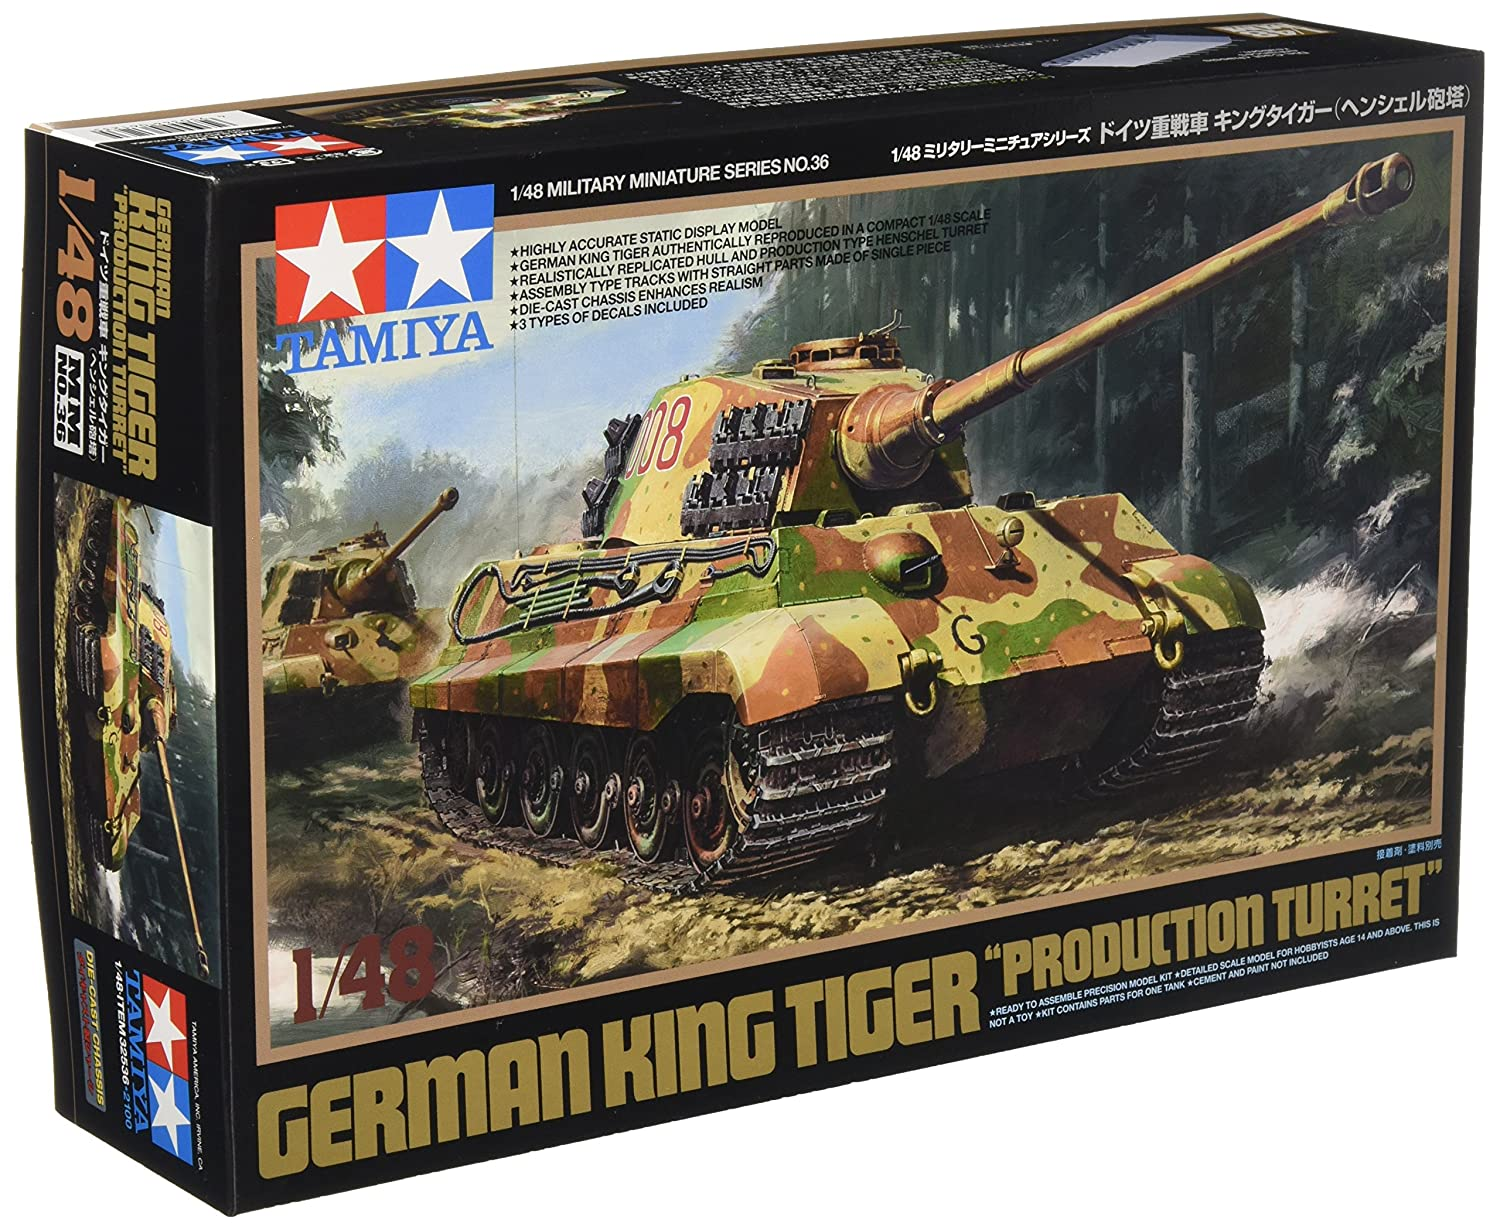 Tamiya 1/48 Military mini Ju series No.36 German Heavy Tank King Tiger (Henschel Turret) 32536 32536-000